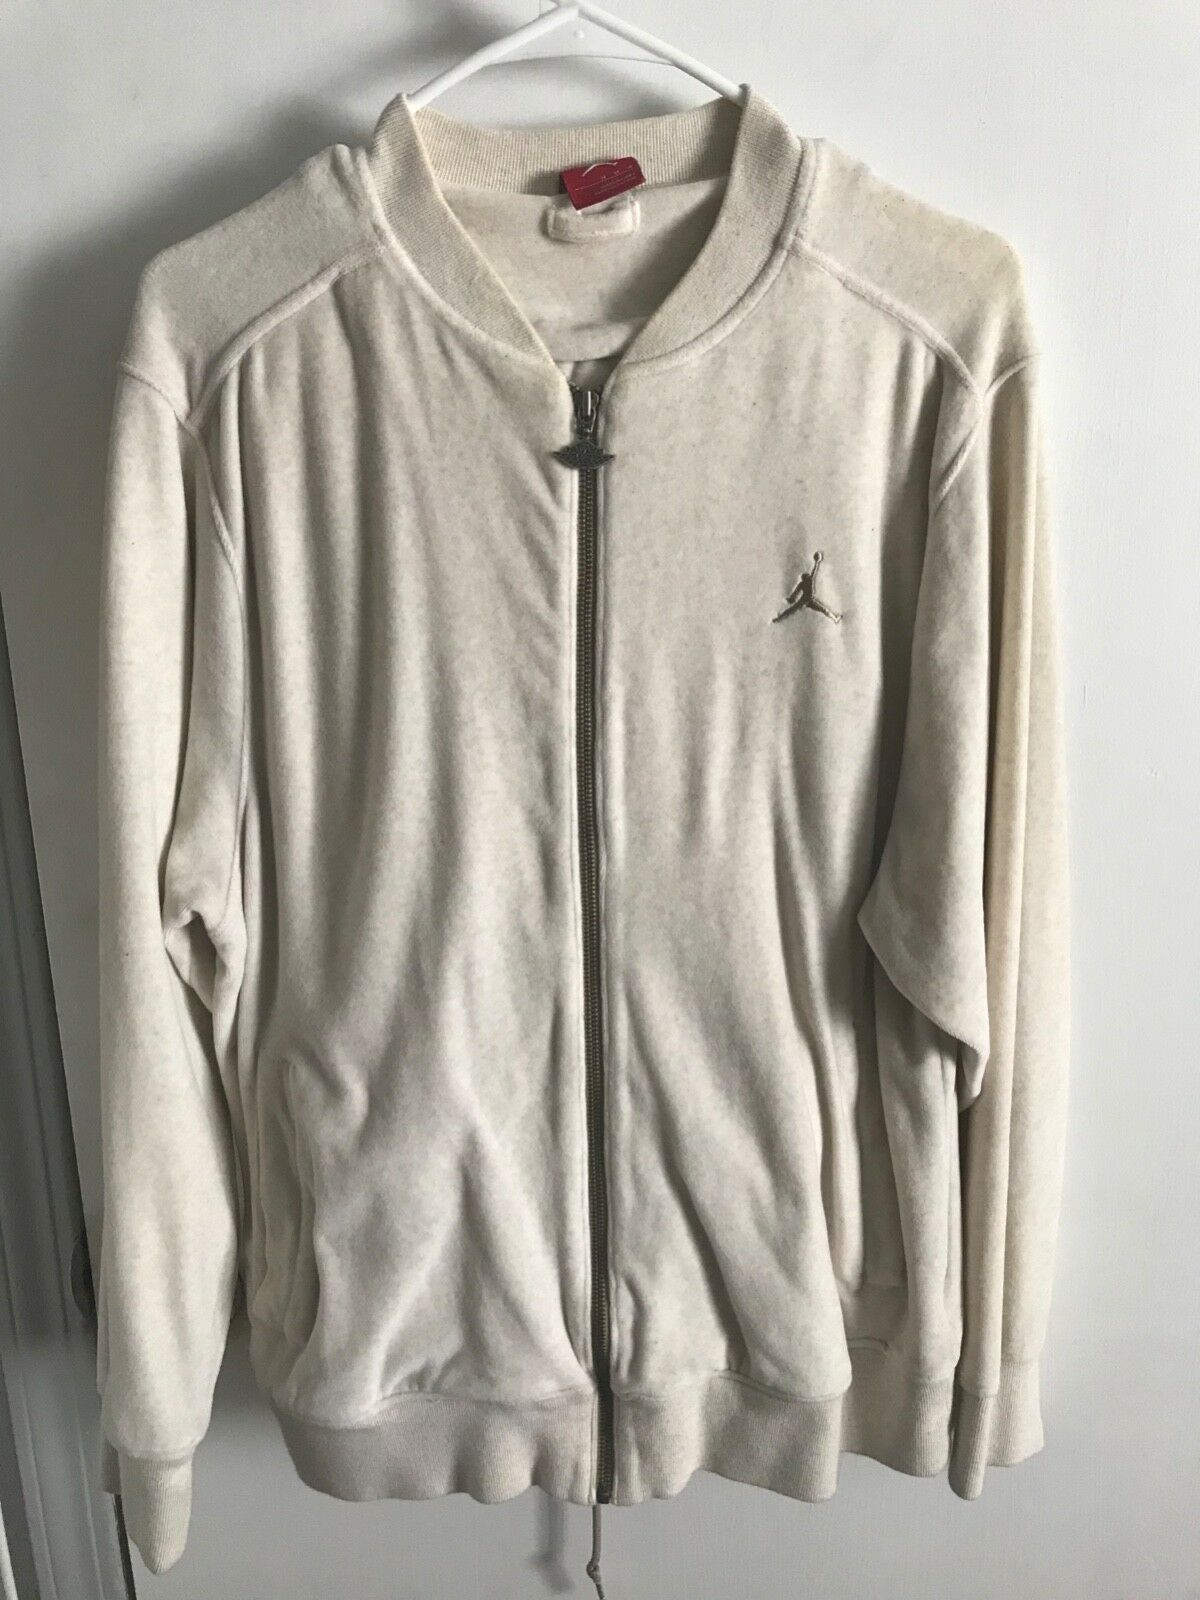 135e66024e7 sweat Suit Medium (NEW) velour Jordan nyyjek5349-Tracksuits & Sets ...